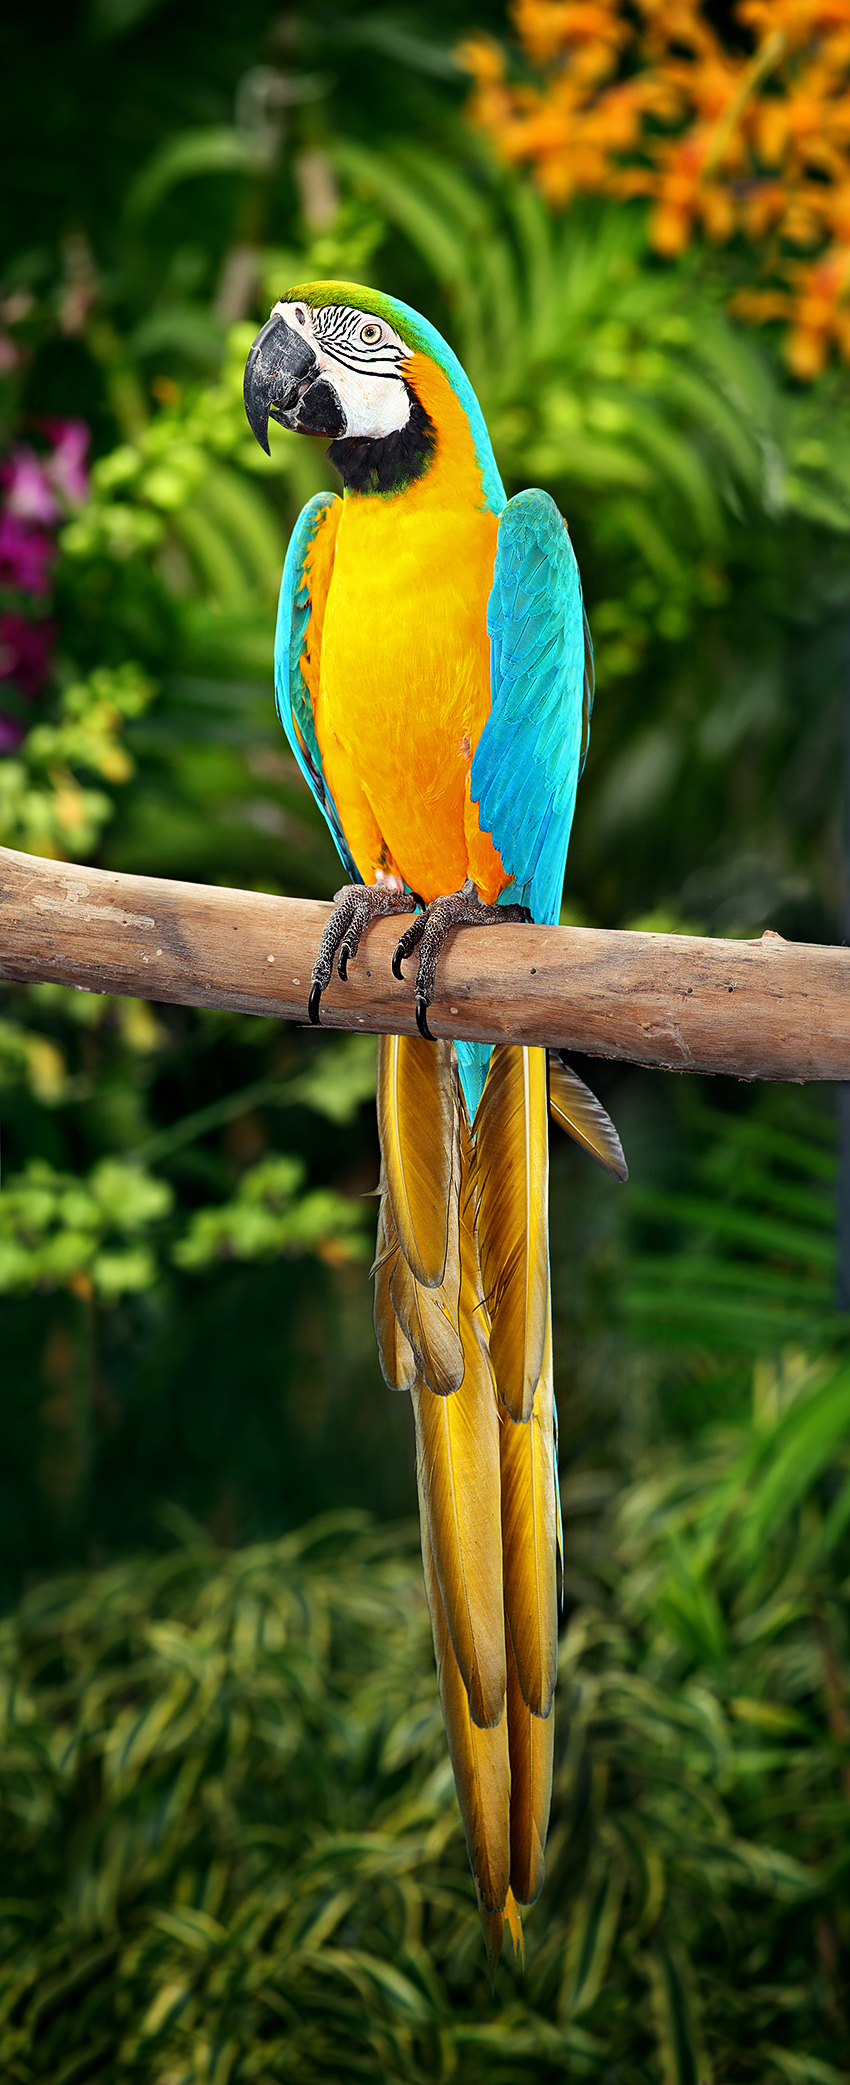 Blue-and-yellow Macaw wallpaper